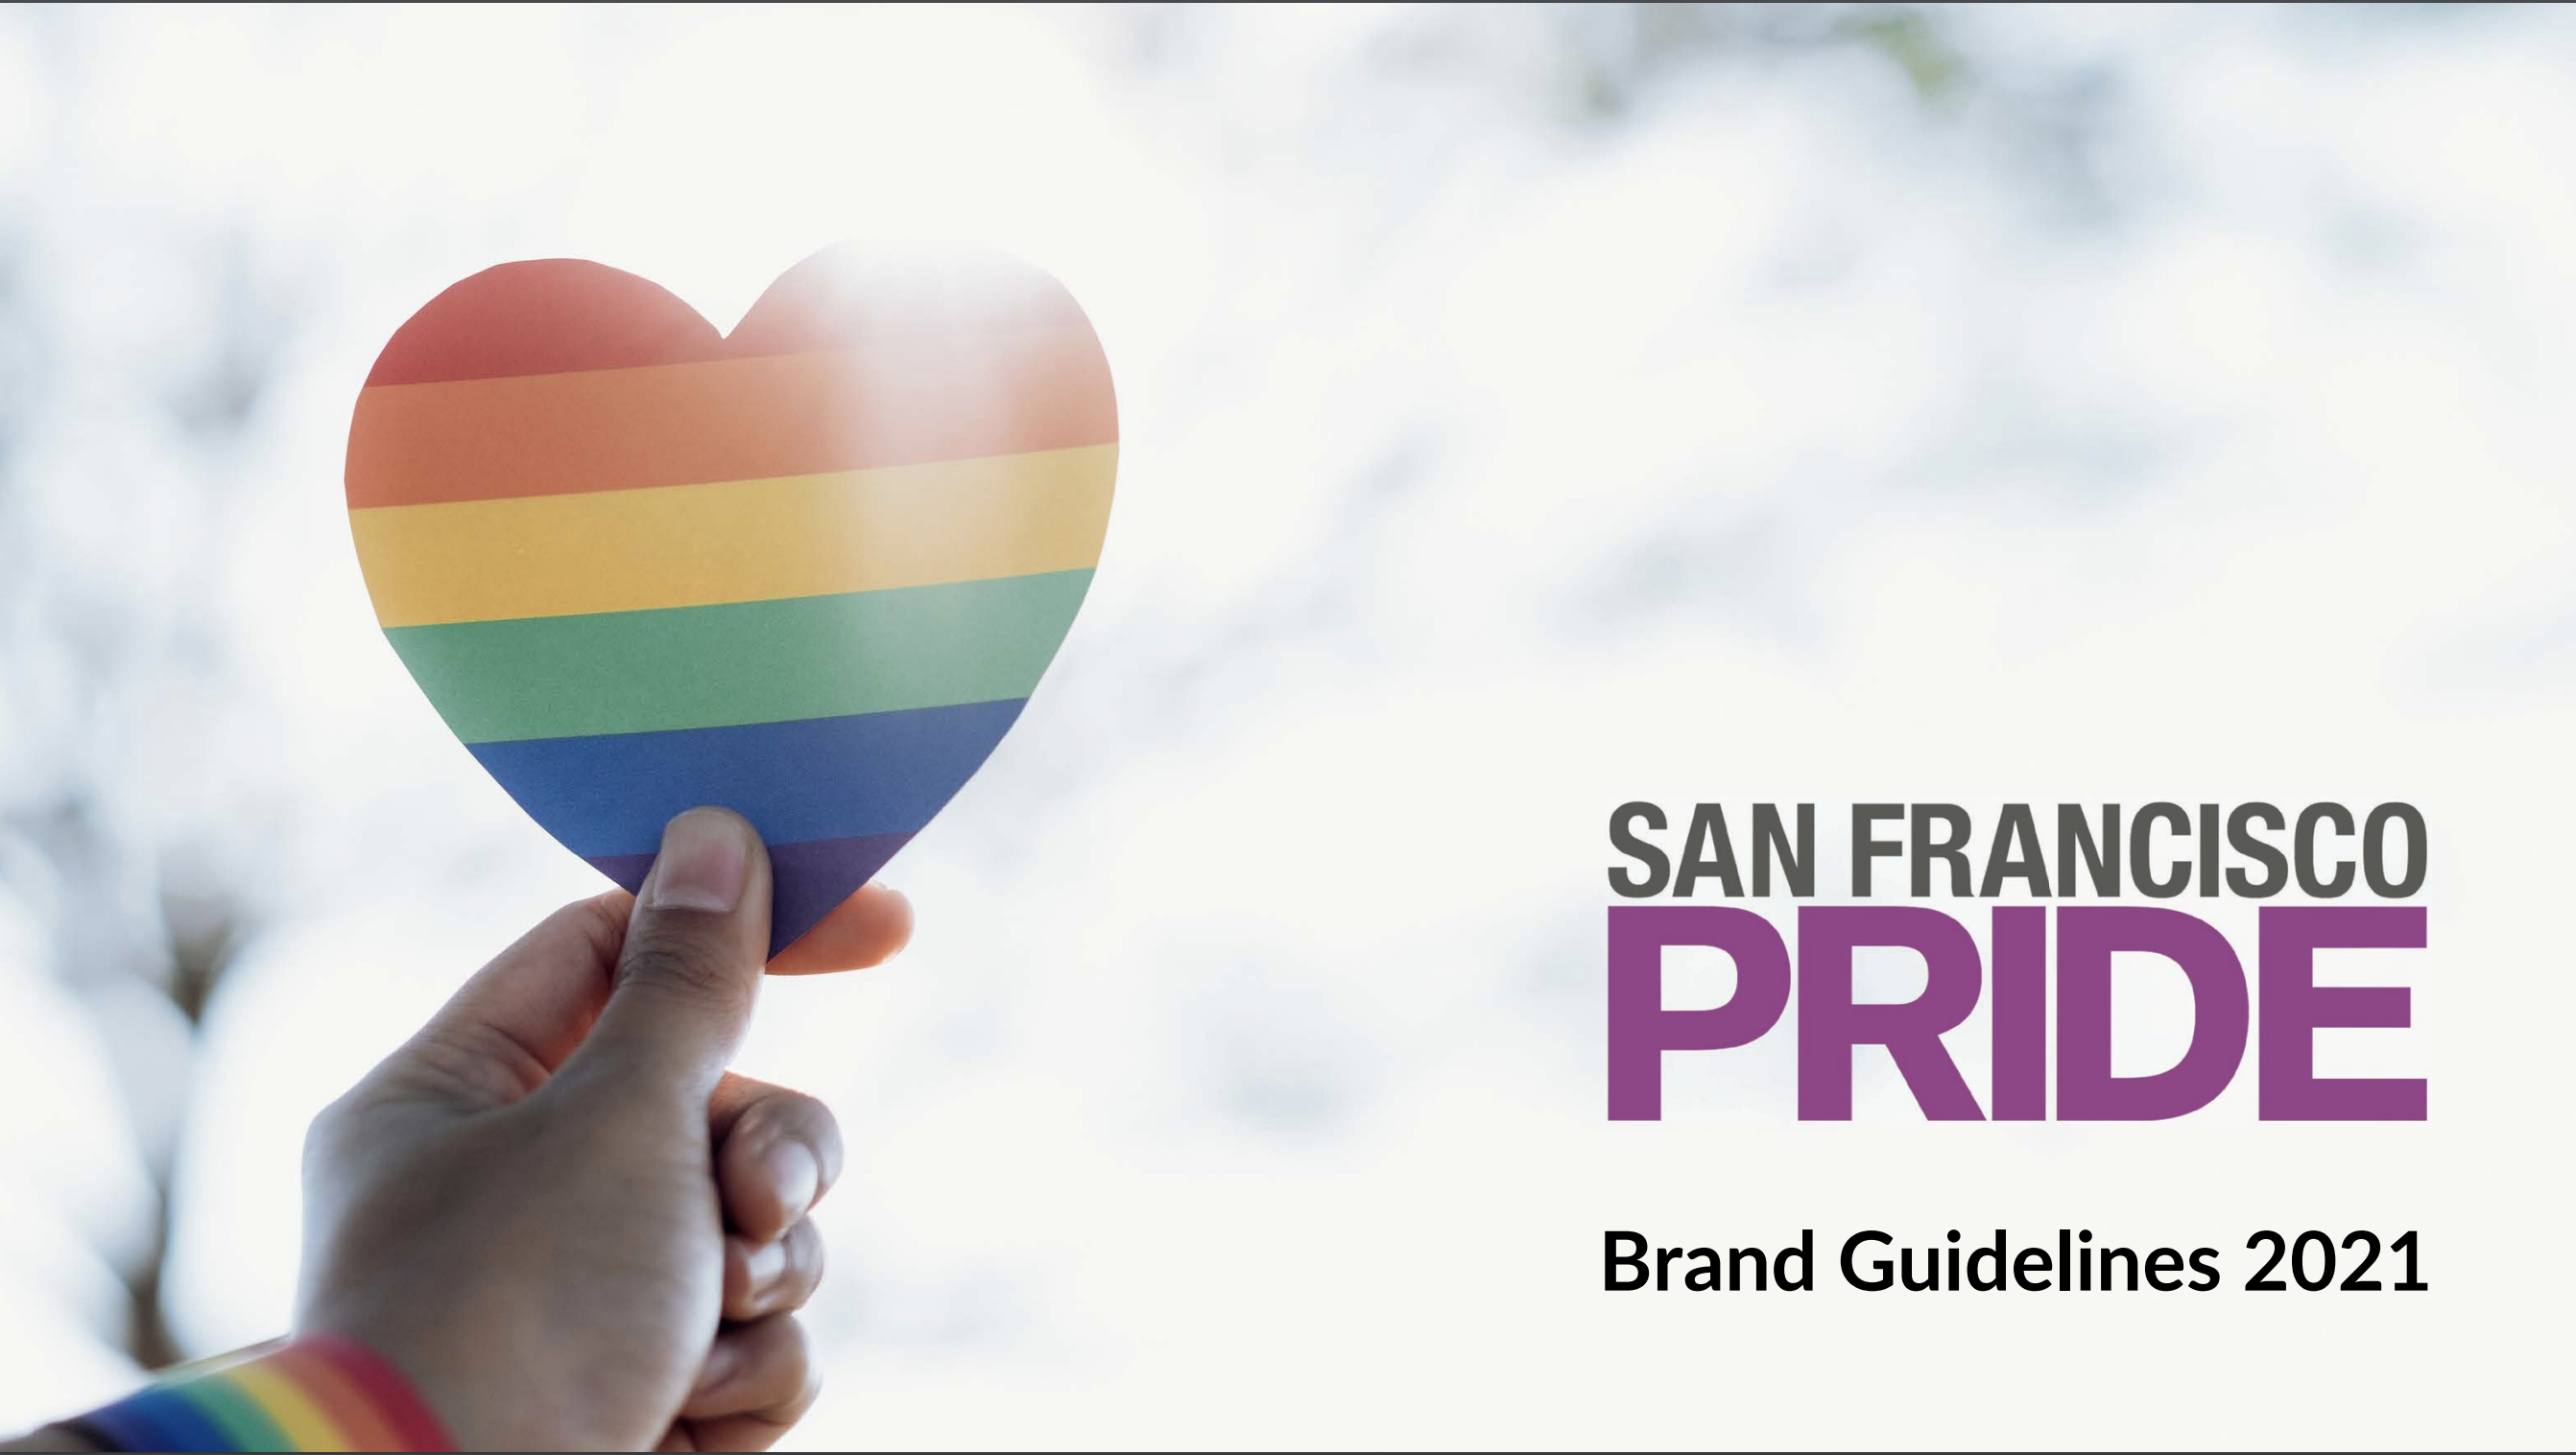 San Francisco LGBT Pride Branding Guidelines for 2021